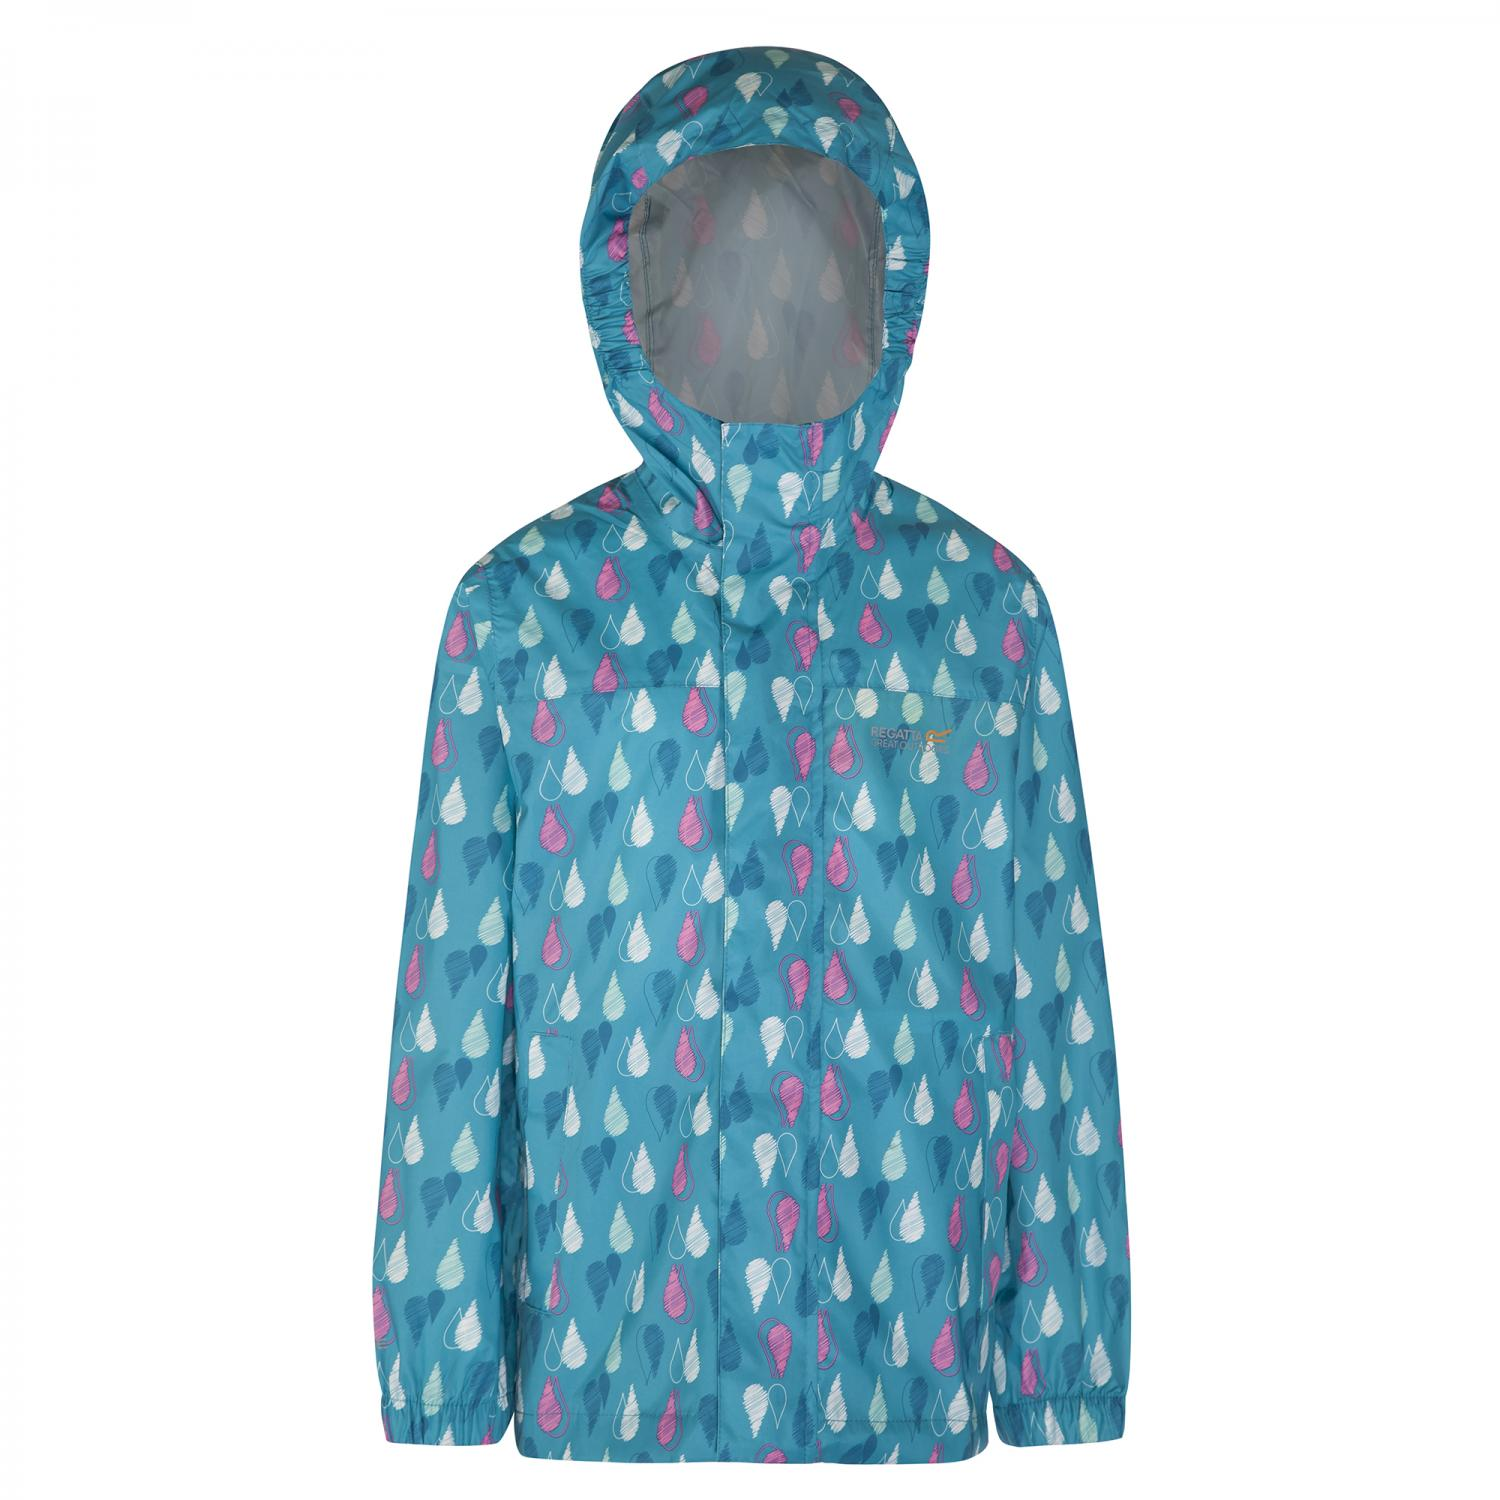 Kids Printed Pack It Jacket Aqua